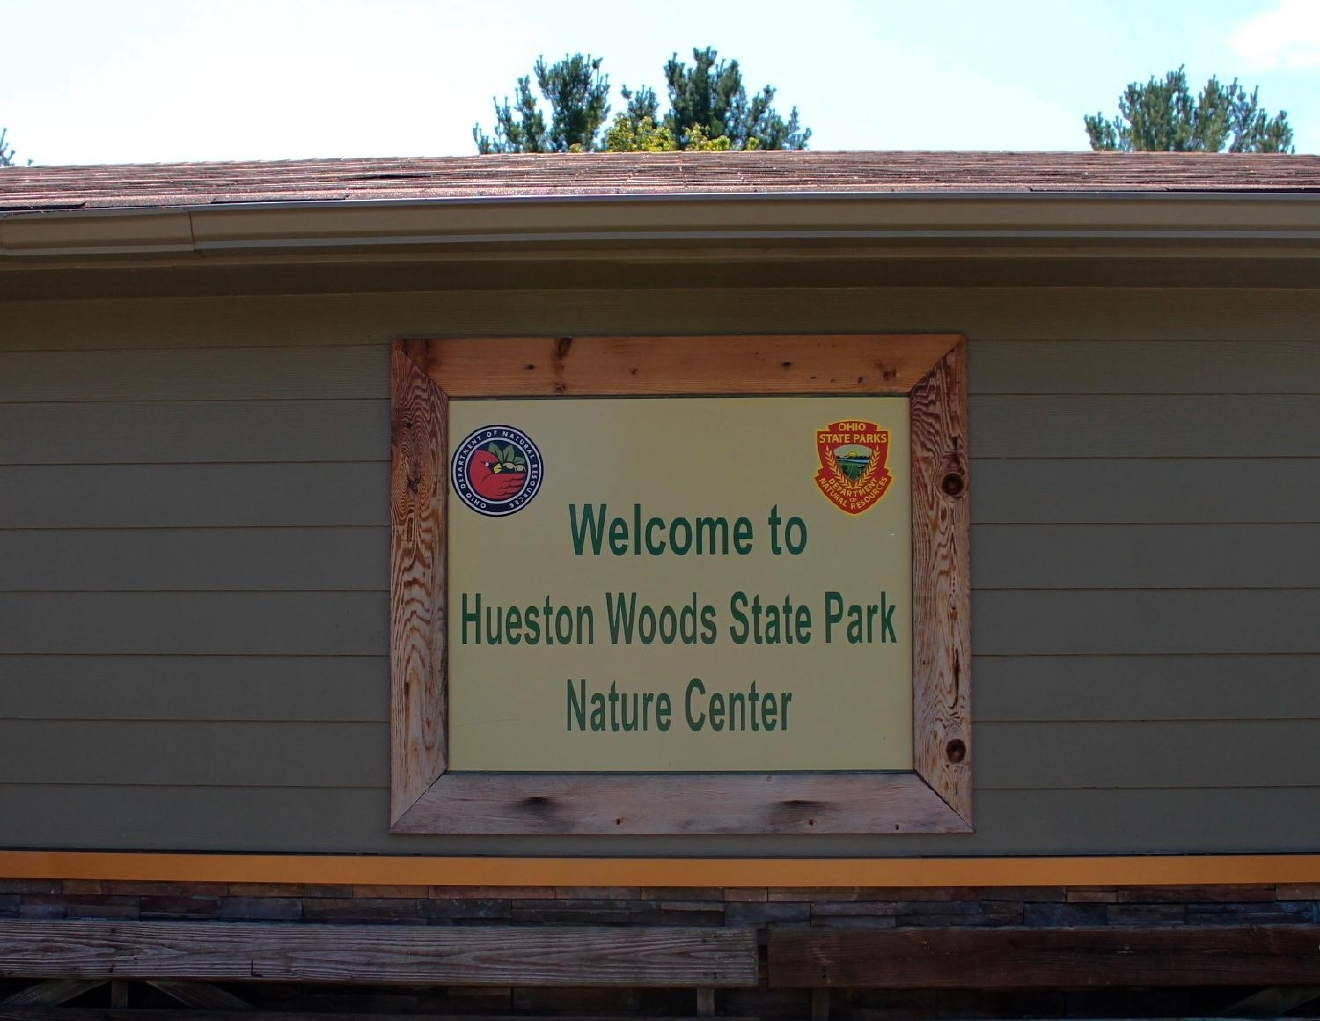 Whether you want to spend all day on trails or have a picnic by the lake, Hueston Woods State Park offers a variety of activities for all nature lovers. / Drive Time From Cincy: 1 hour / Address: 6301 Park Office Road, College Corner, OH 45003. // Image: Rose Brewington